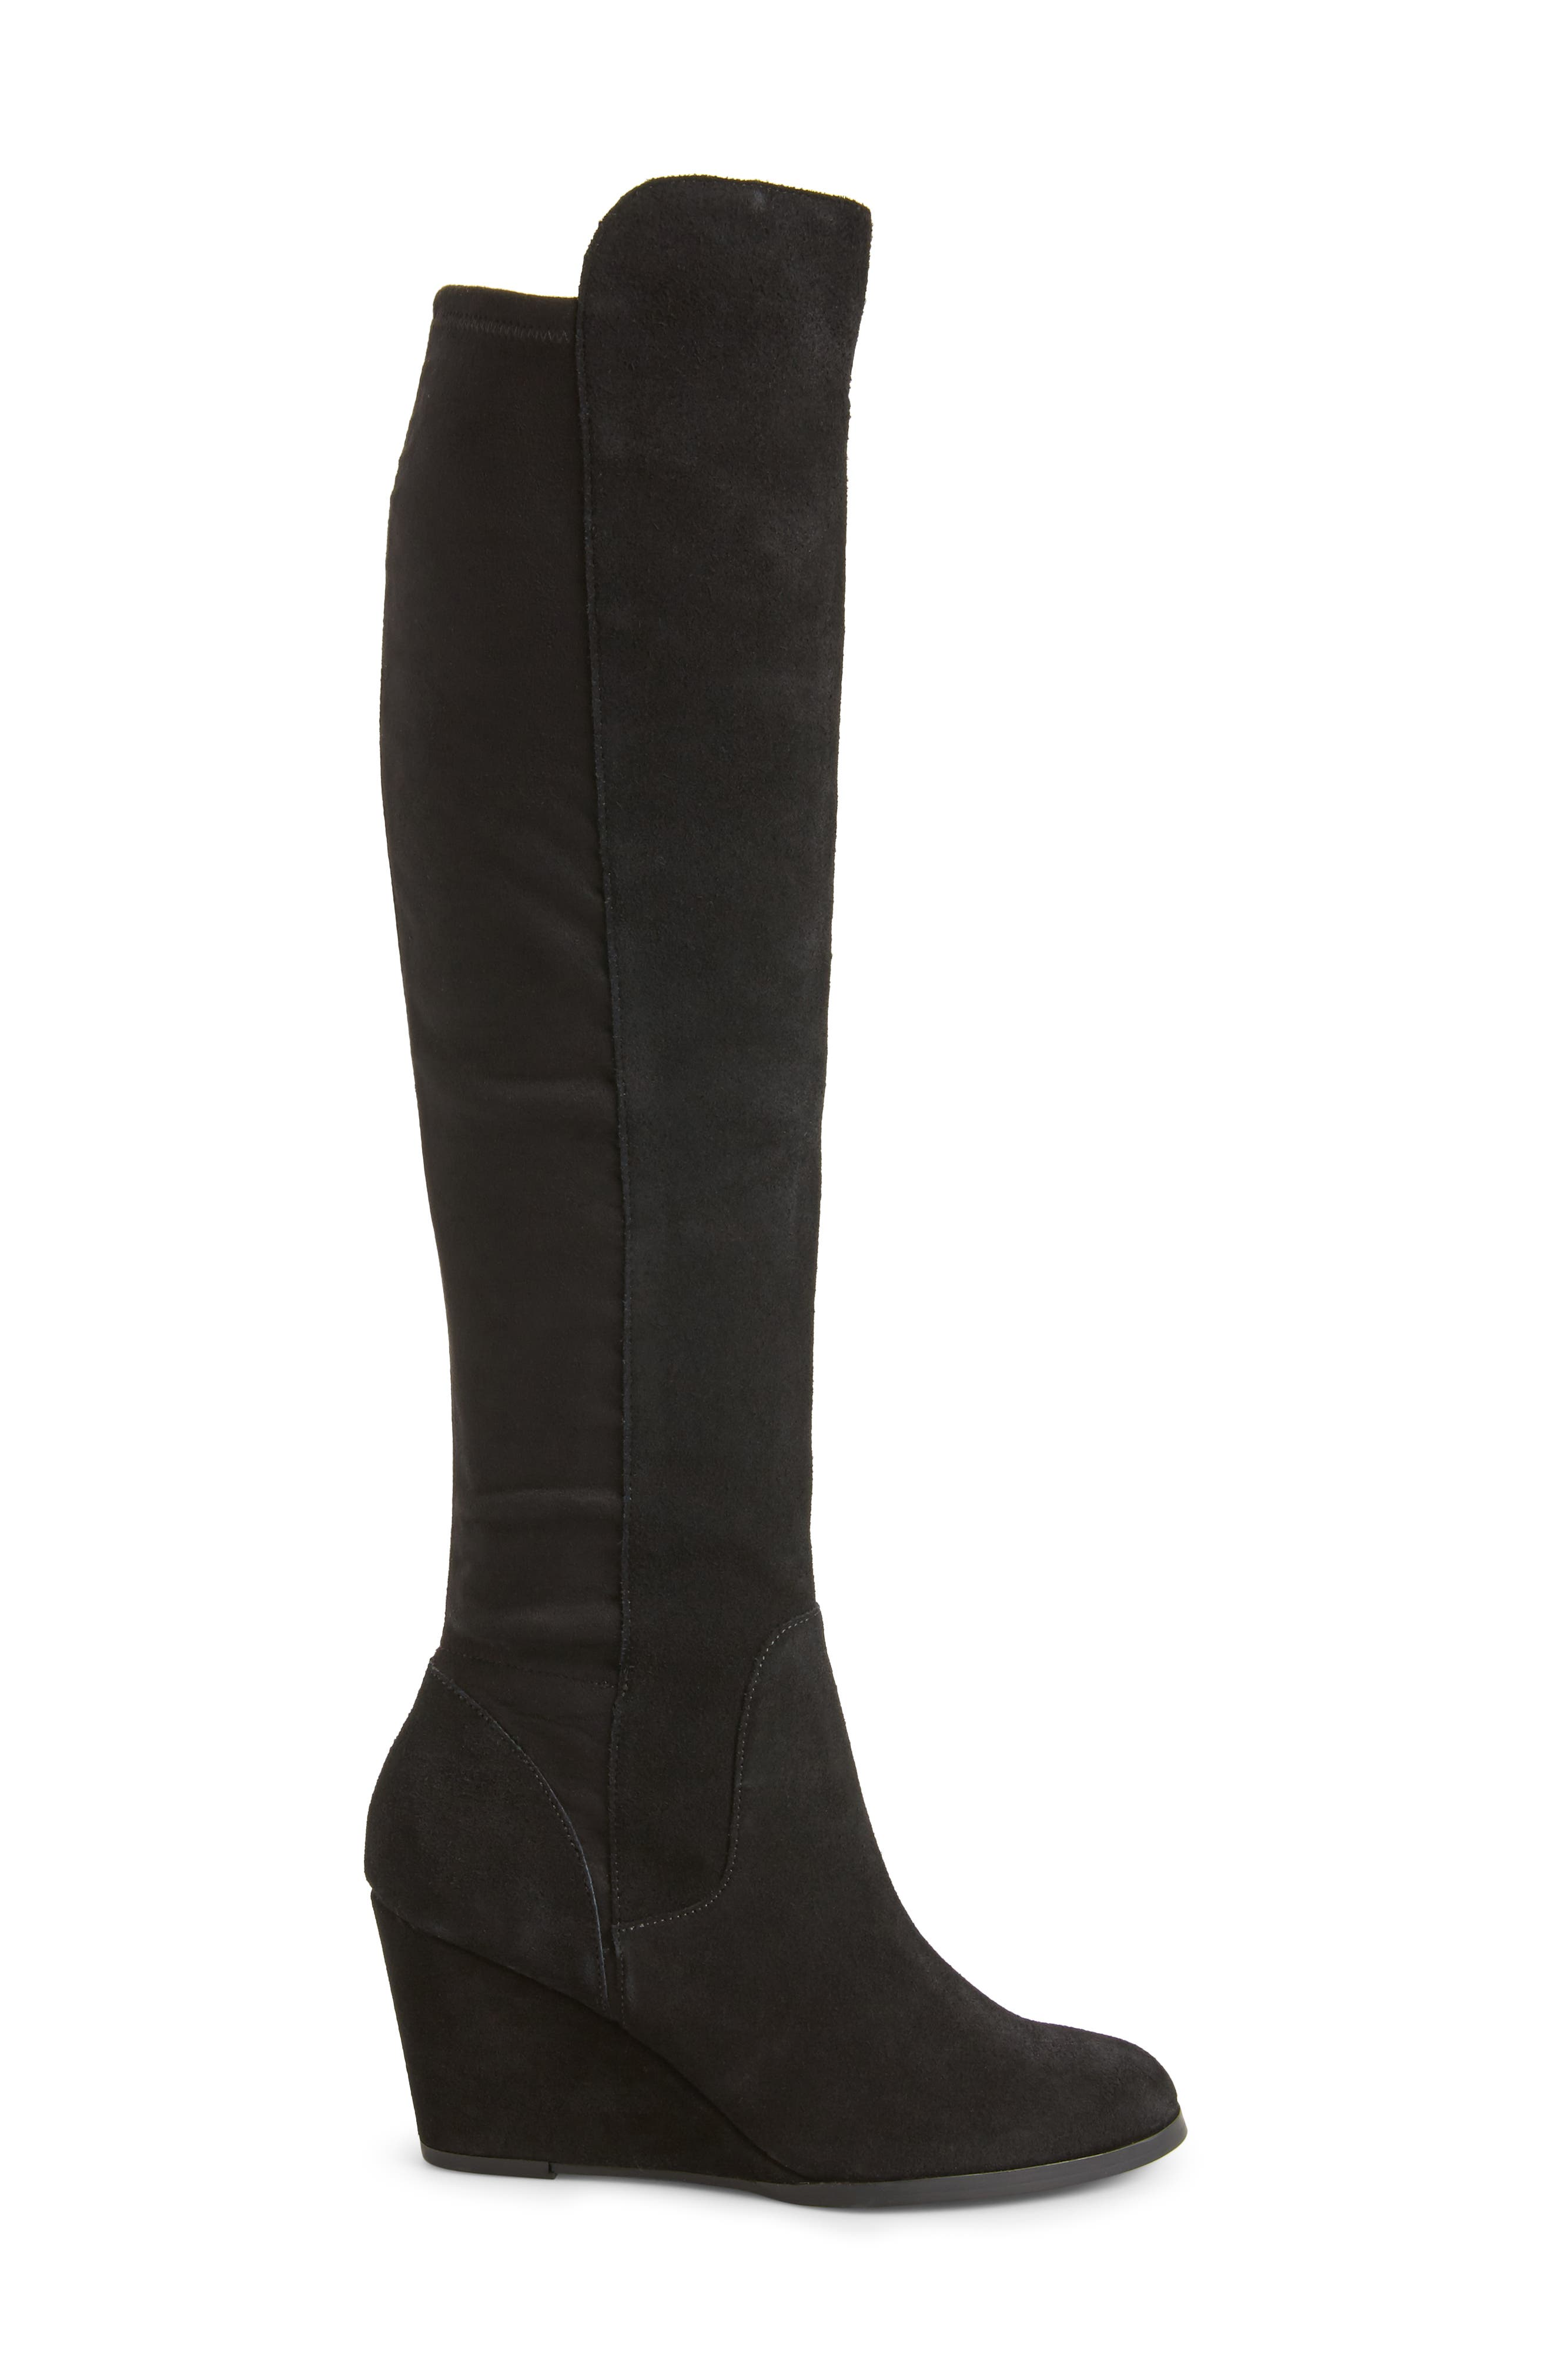 SOLE SOCIETY, Laila Boot, Alternate thumbnail 3, color, 001